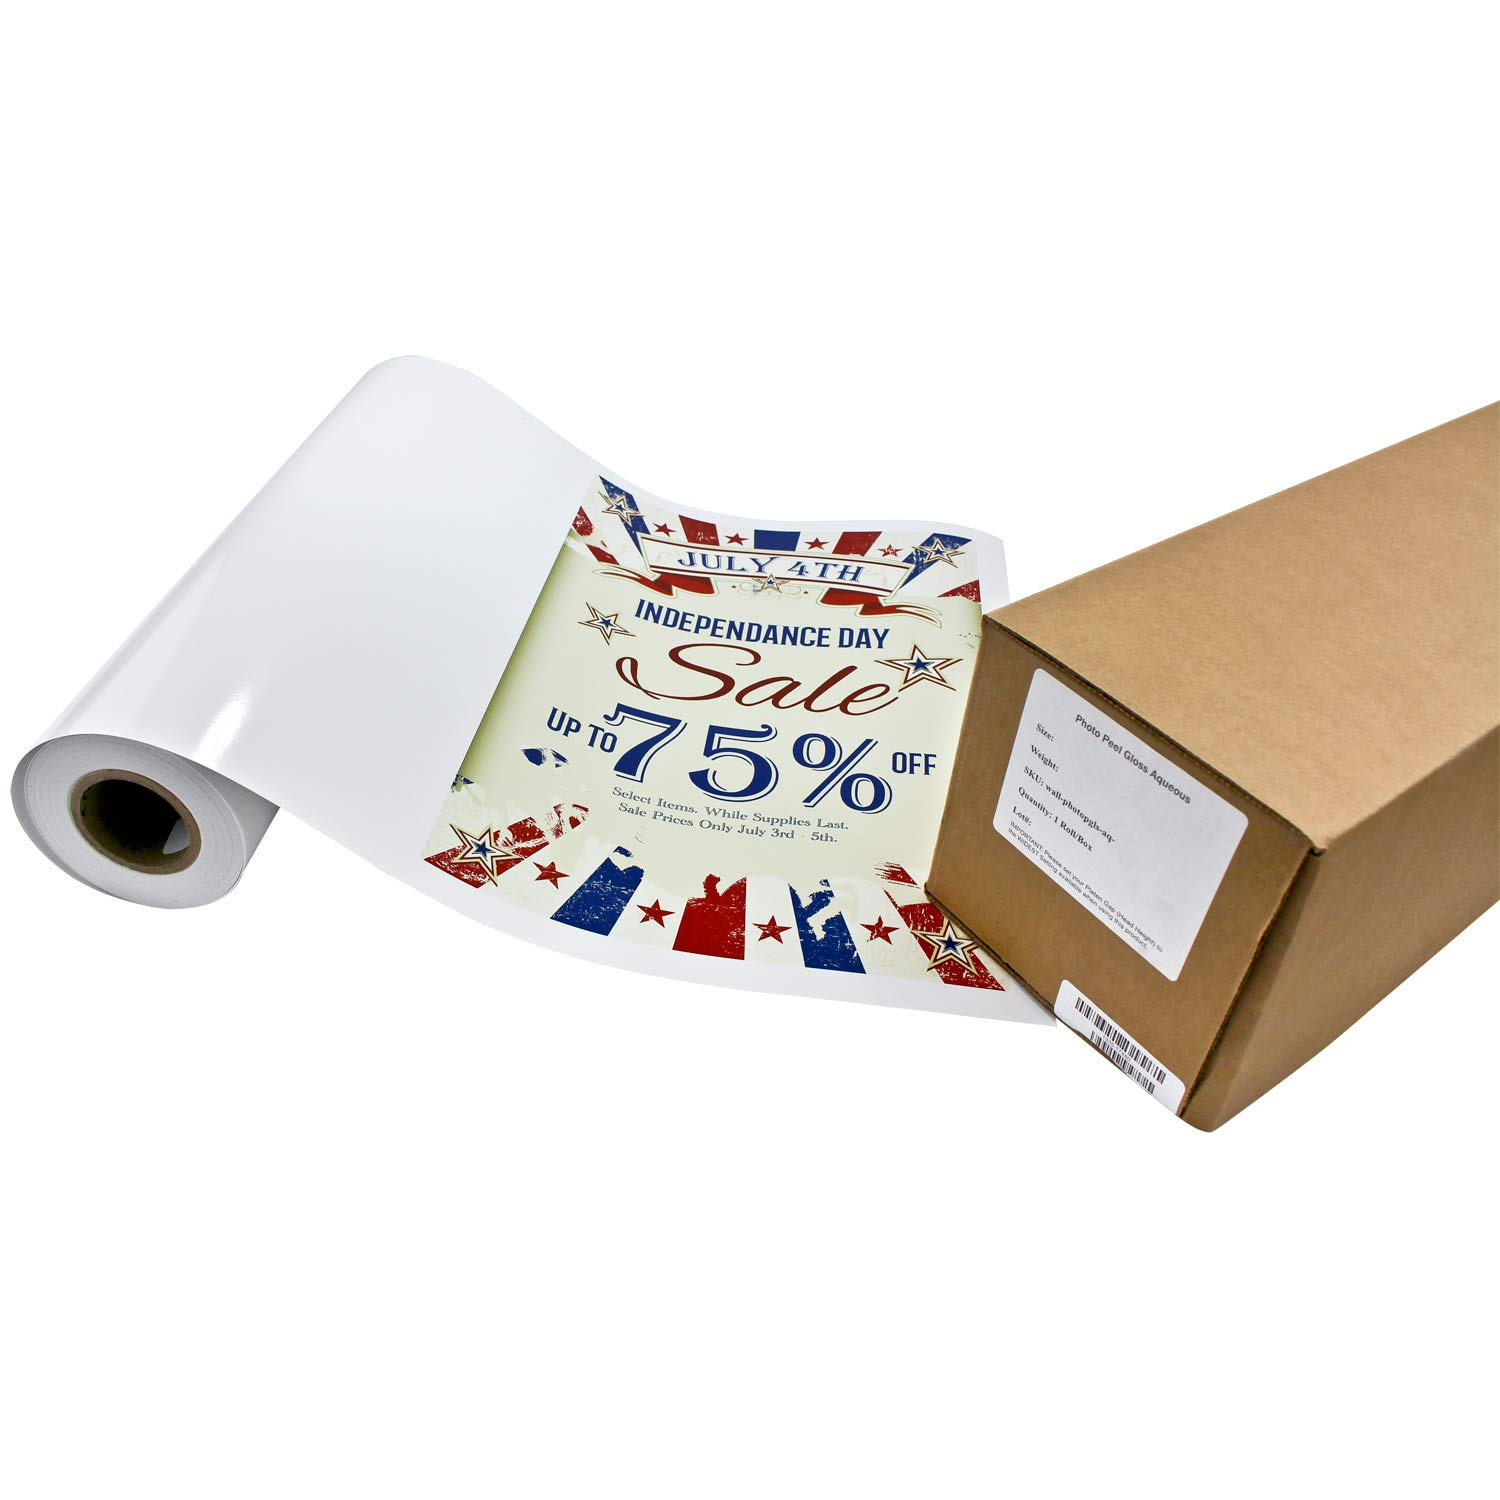 photograph relating to Printable Adhesive Vinyl named Image Peel Shiny Printable Adhesive Vinyl Roll 17 inches x 10 ft Inkjet Peel and Adhere Sticker Paper Performs with All Inkjet Printers Like